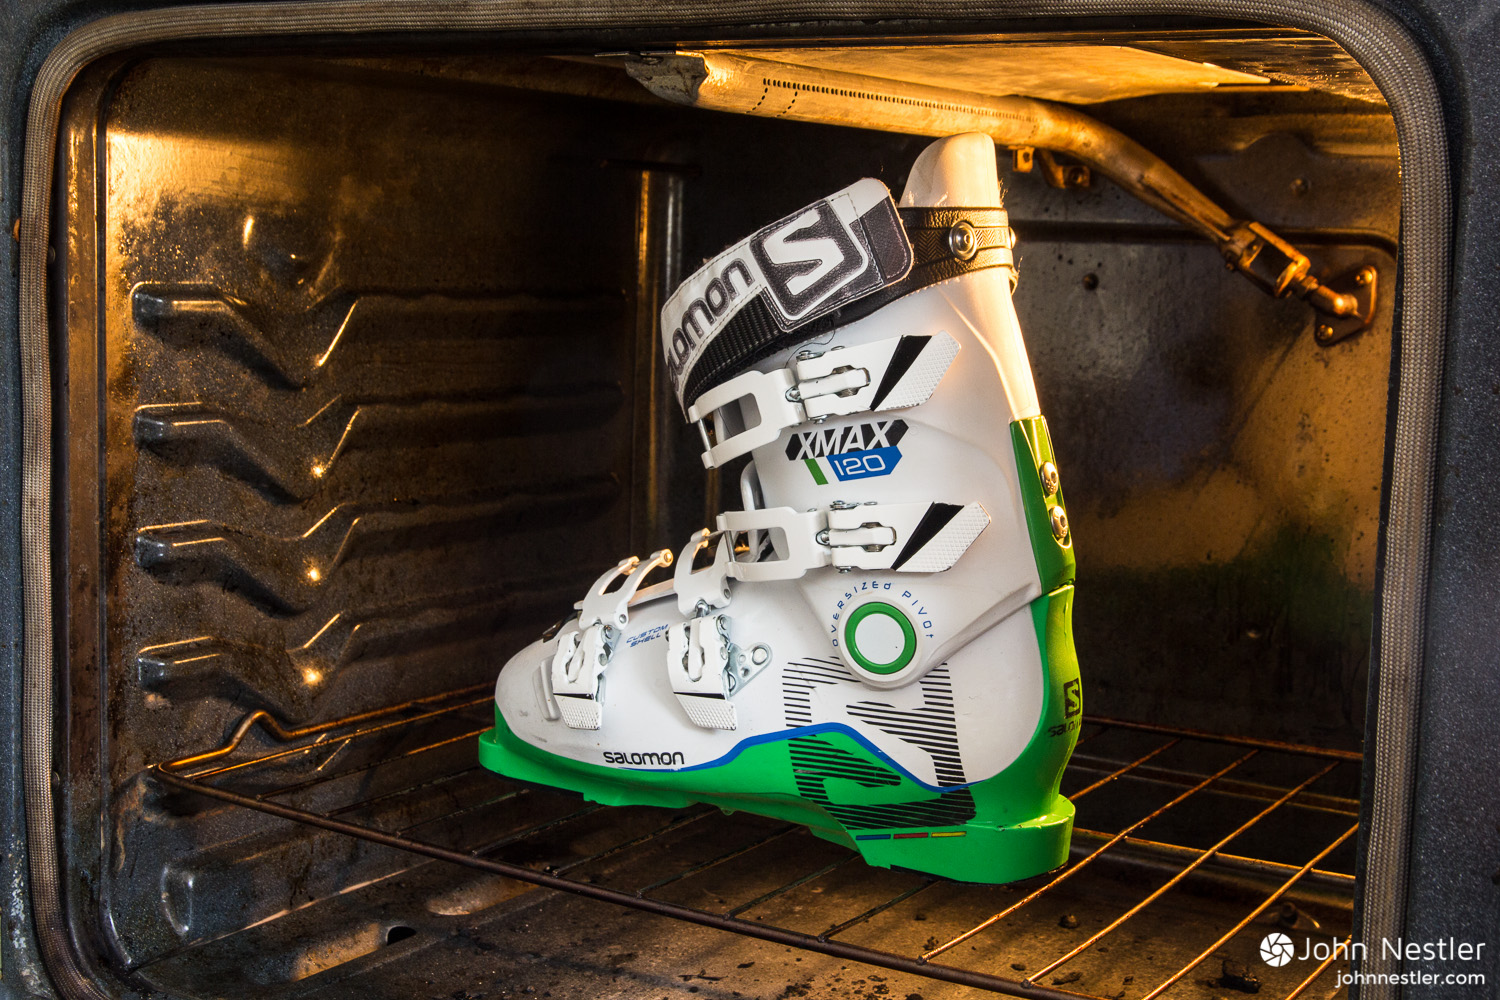 ef26e4f2b8 How to Heat Your Salomon Custom Shell Ski Boots at Home